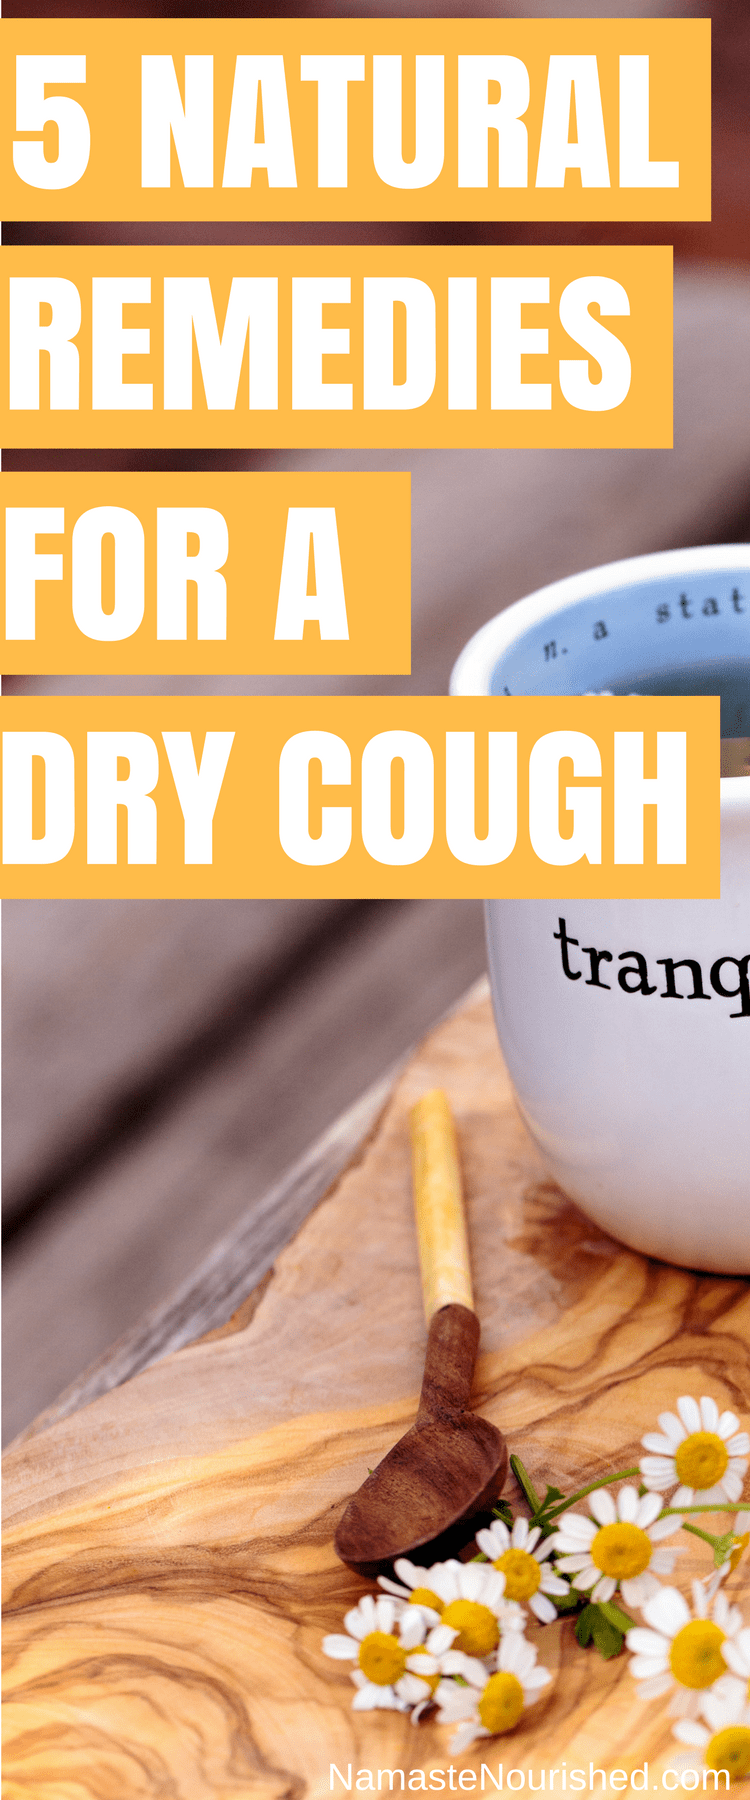 5 Best Remedies For A Dry Cough